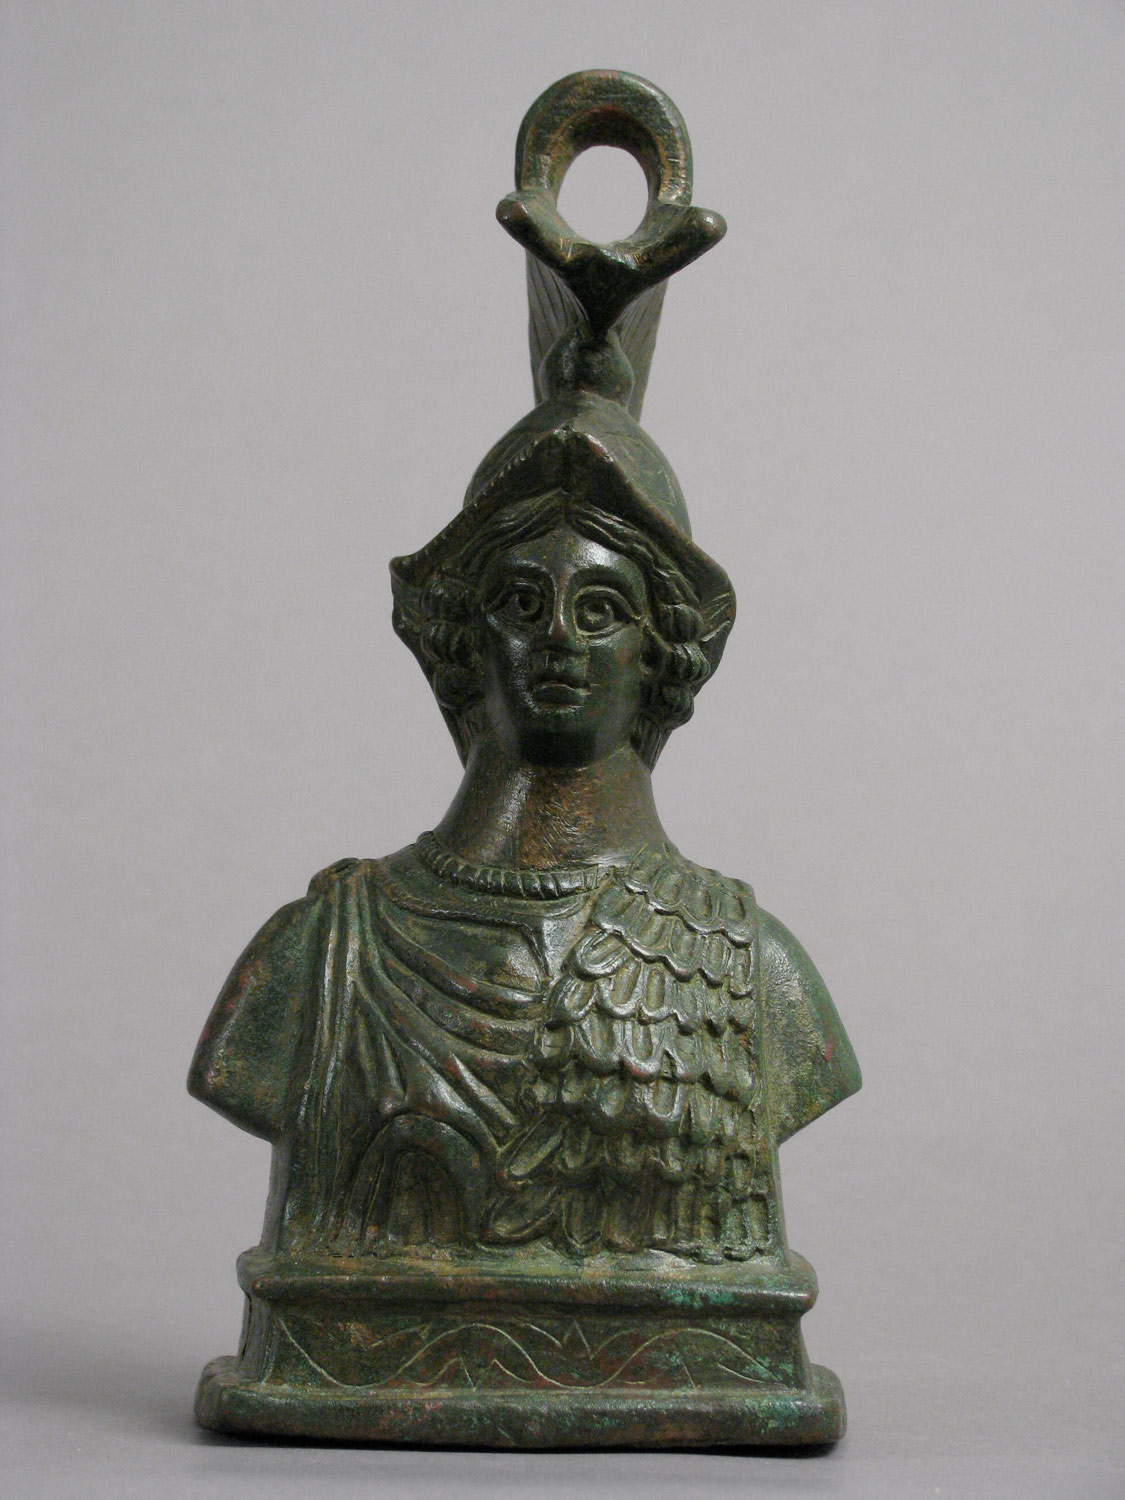 Steelyard Weight with the Bust of Athena